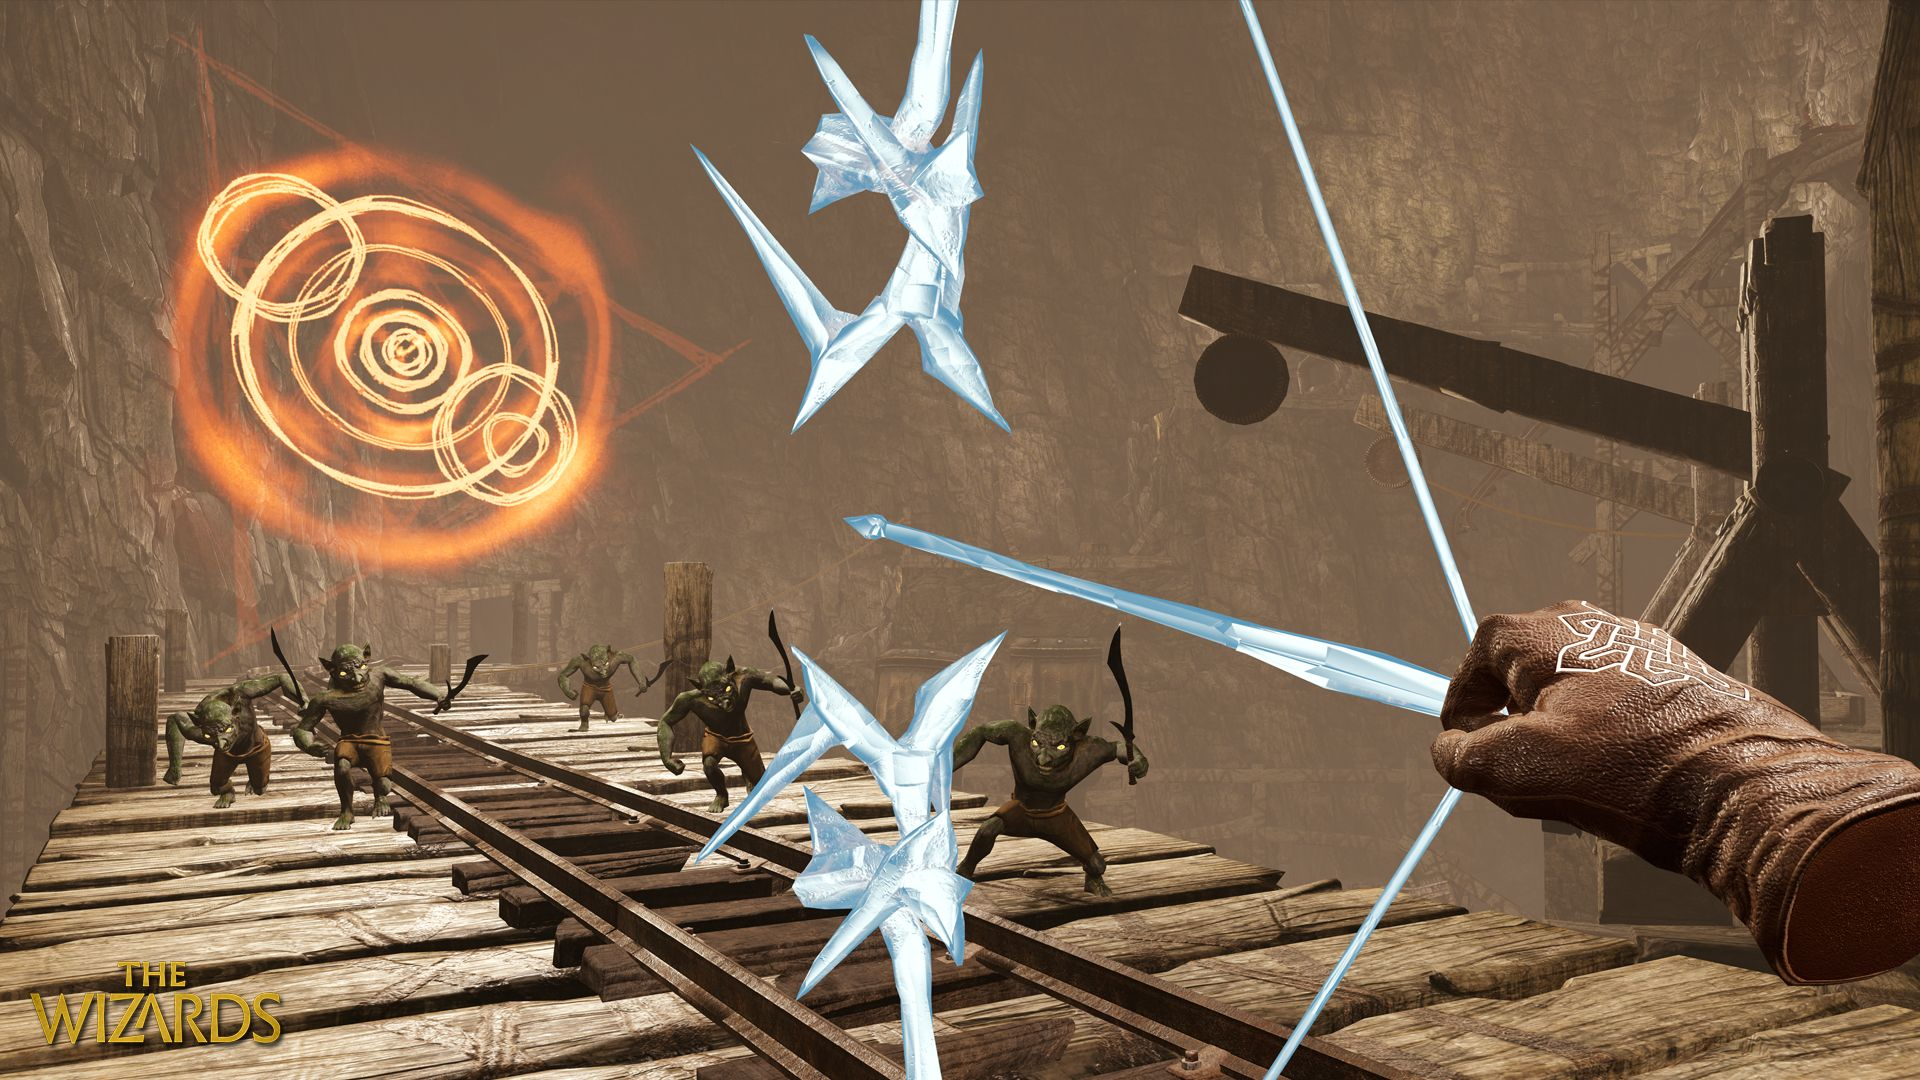 the wizards vr spellcaster